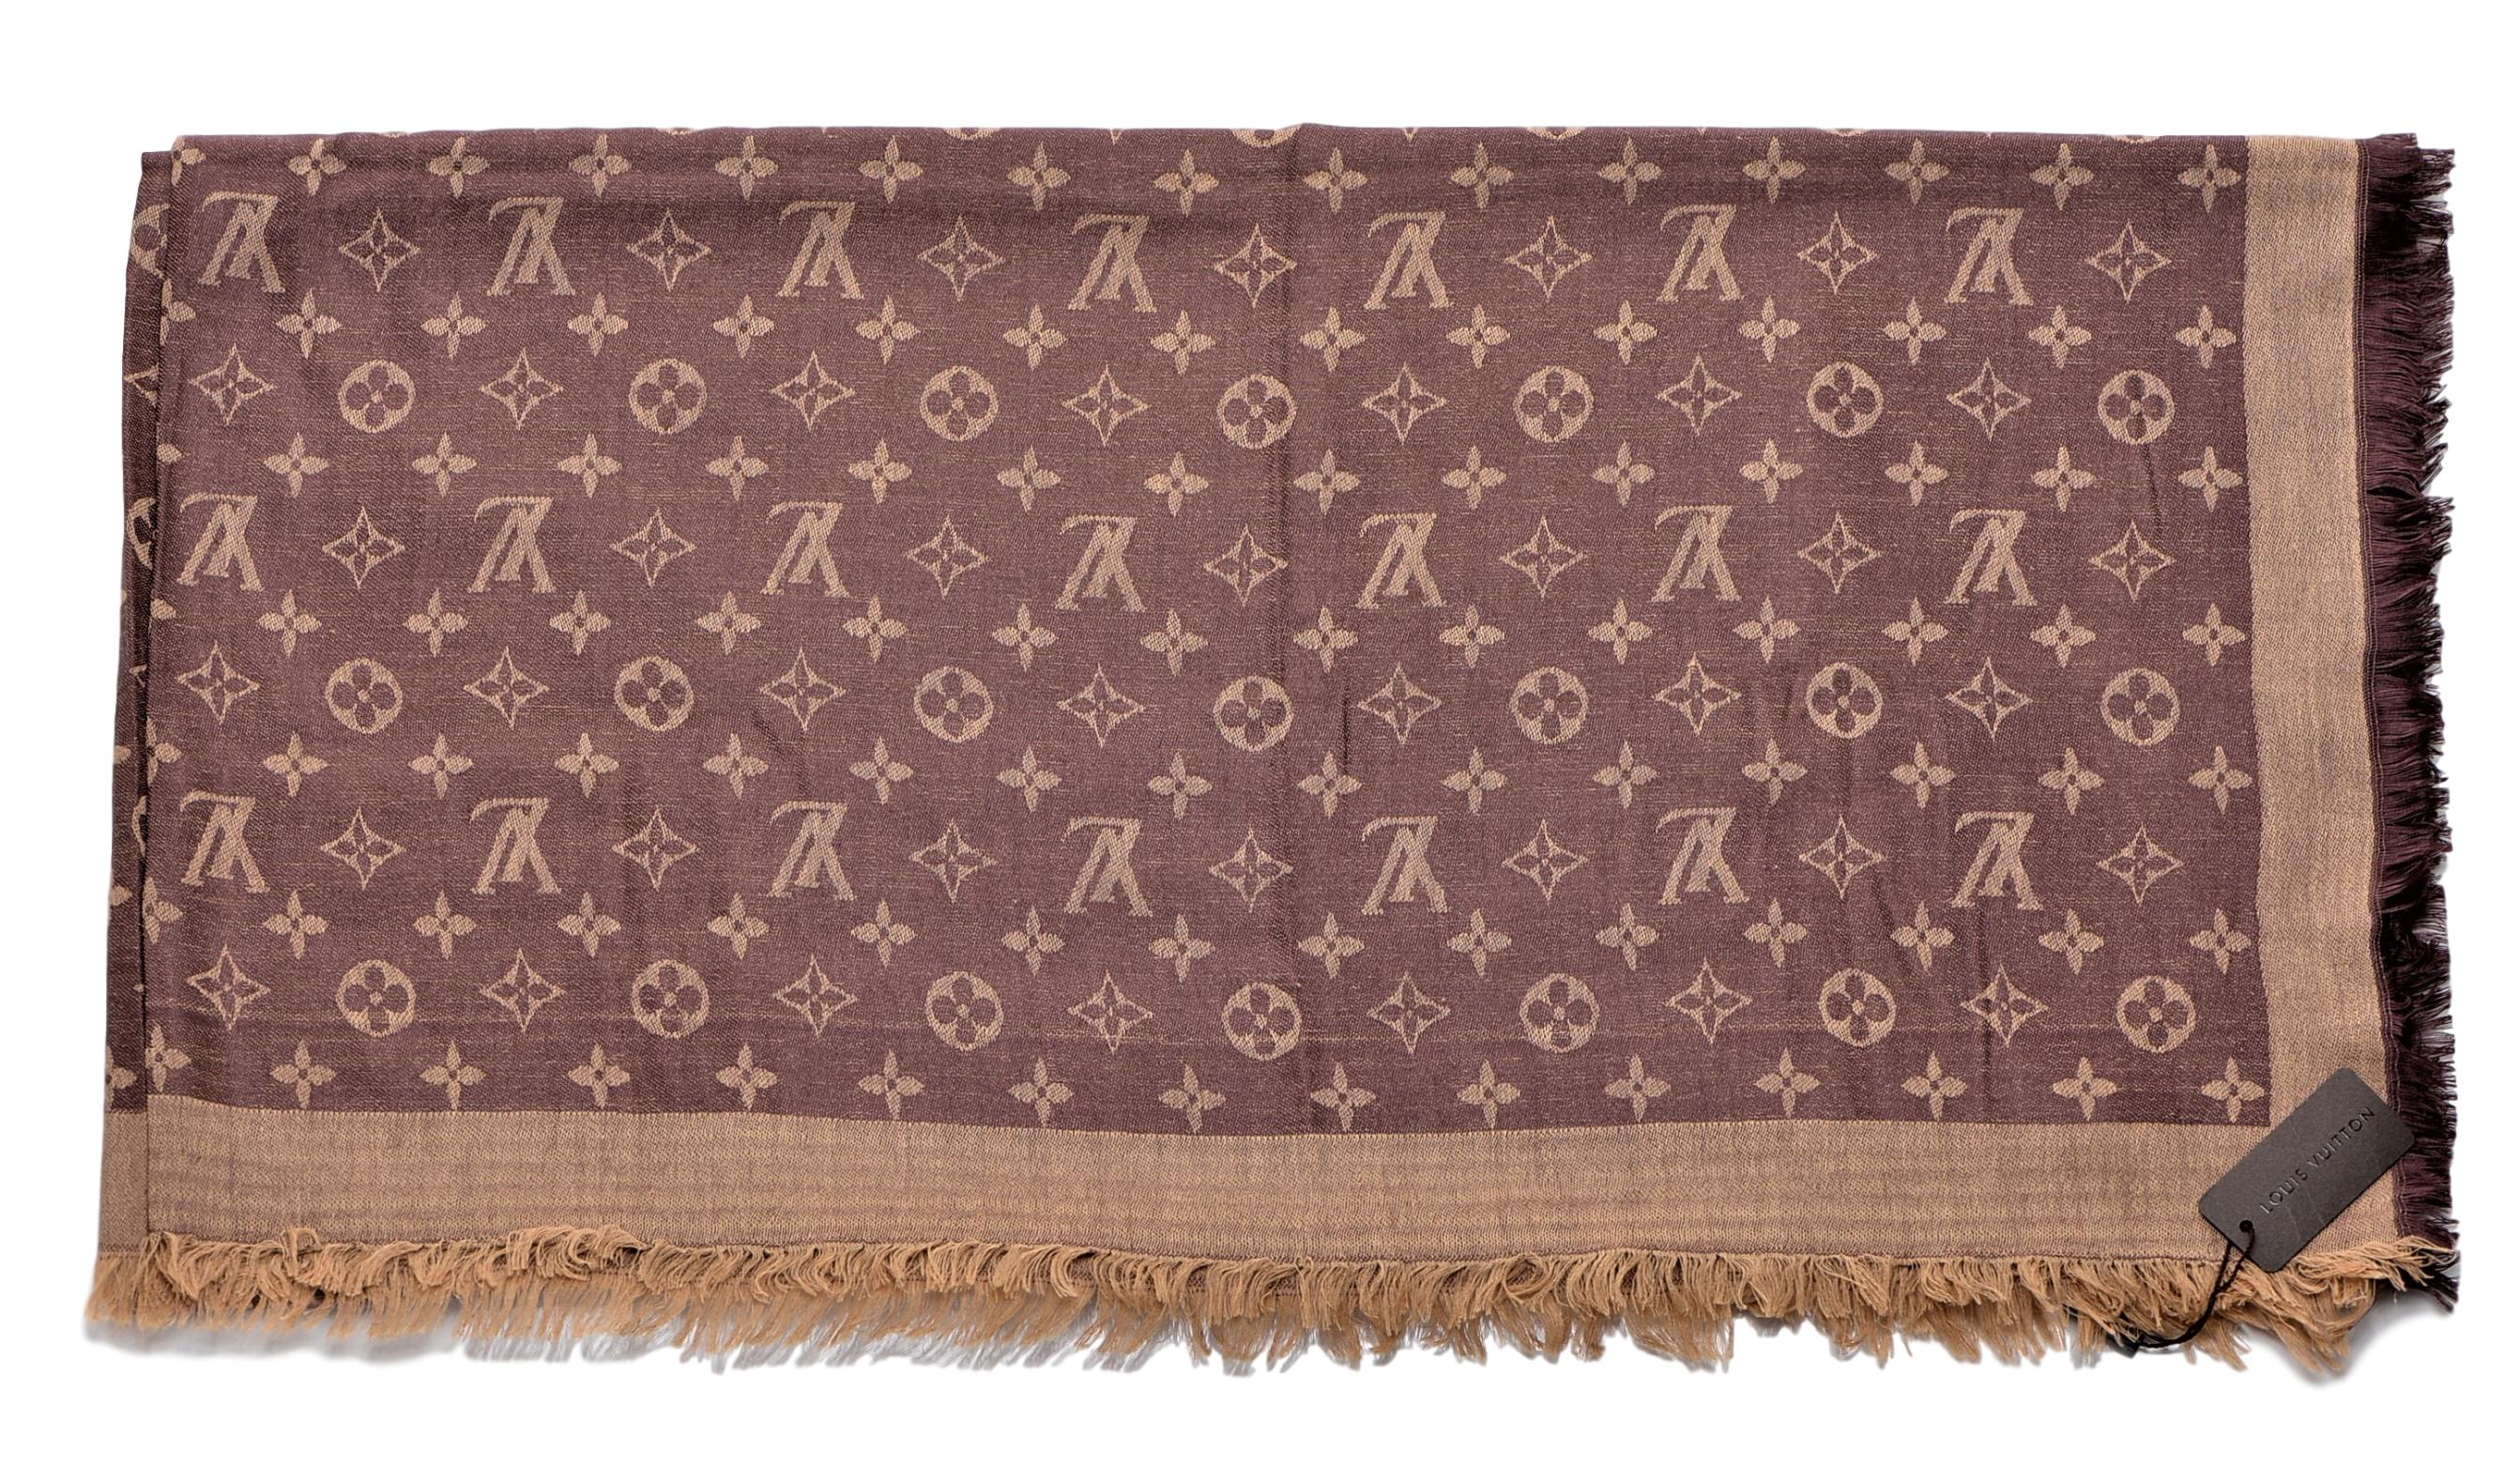 afca4aaef324 Louis Vuitton Women s Cashmere Wool Scarf shawl Khaki M71376 One Size